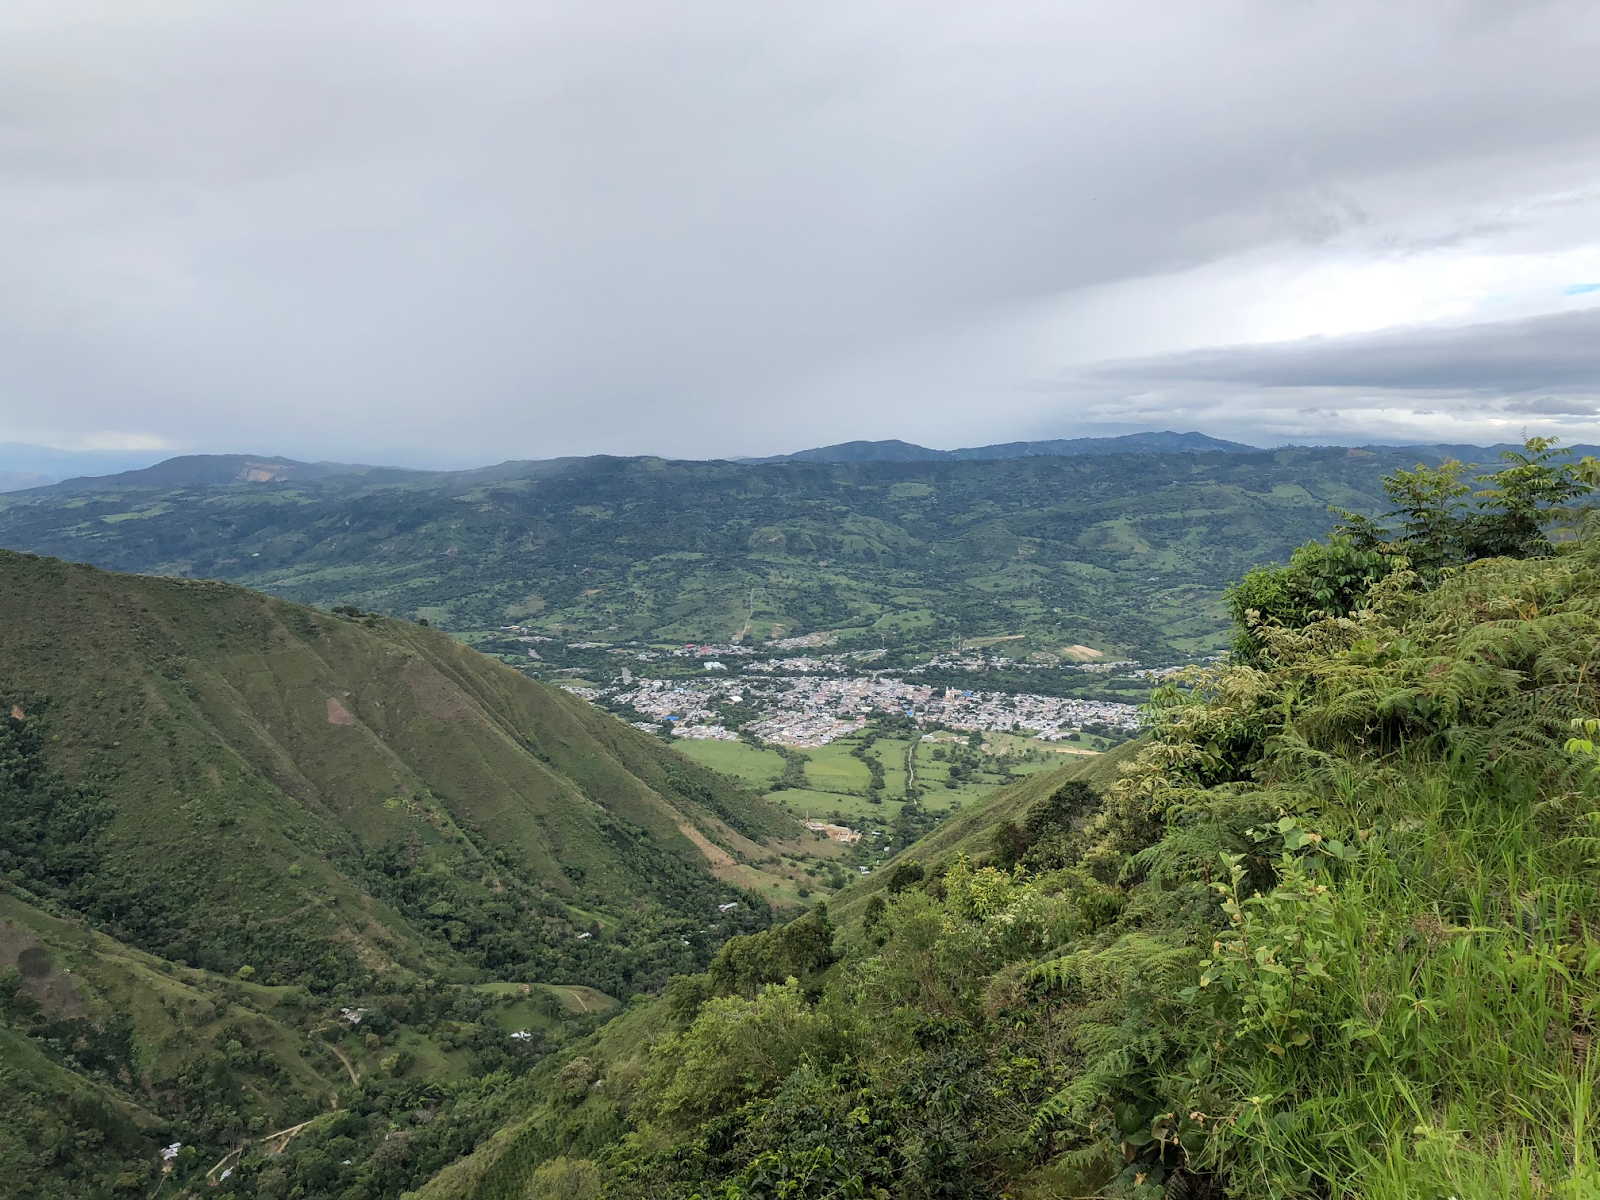 A view of La Plata, Huila from a farm in Belen. The majority of our current Colombian coffee is grown in these mountains and delivered to the city below for purchase. Their unique coffees are sweet and balanced with strong caramel and citrus notes, a versatile profile featured prominently in our Congress and Republic blends.